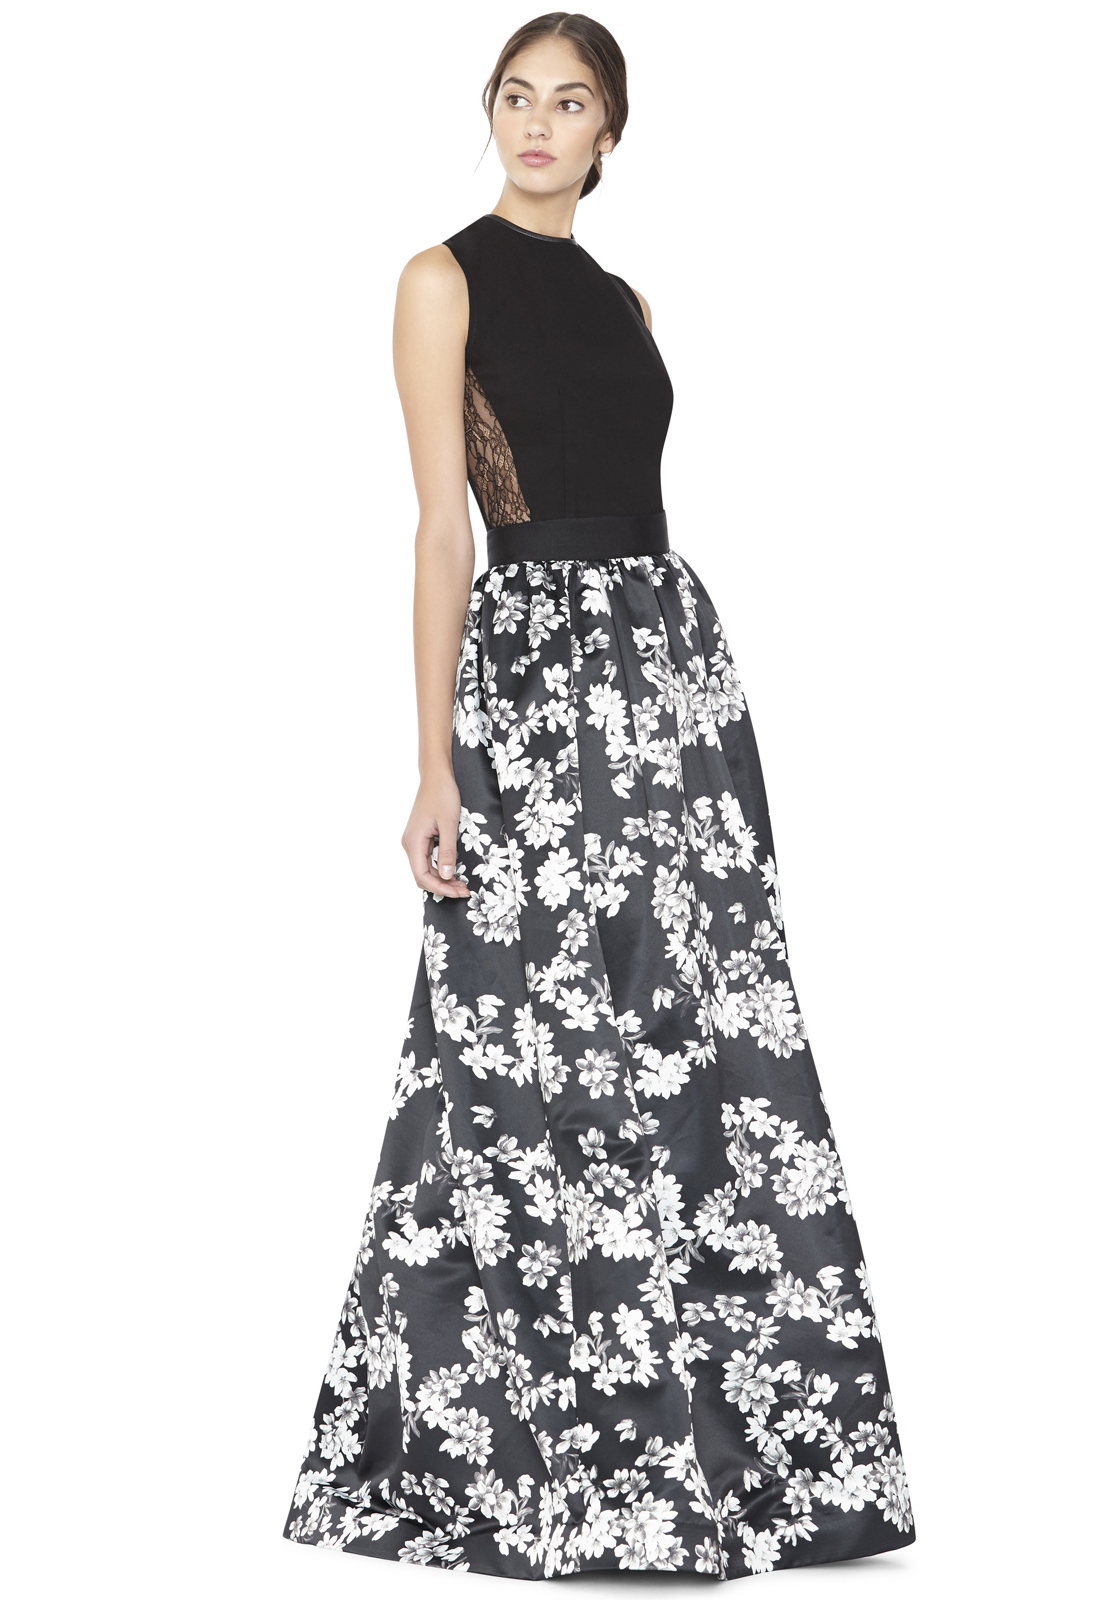 Lyst - Alice + Olivia Tina Long Ball Gown Skirt in Gray